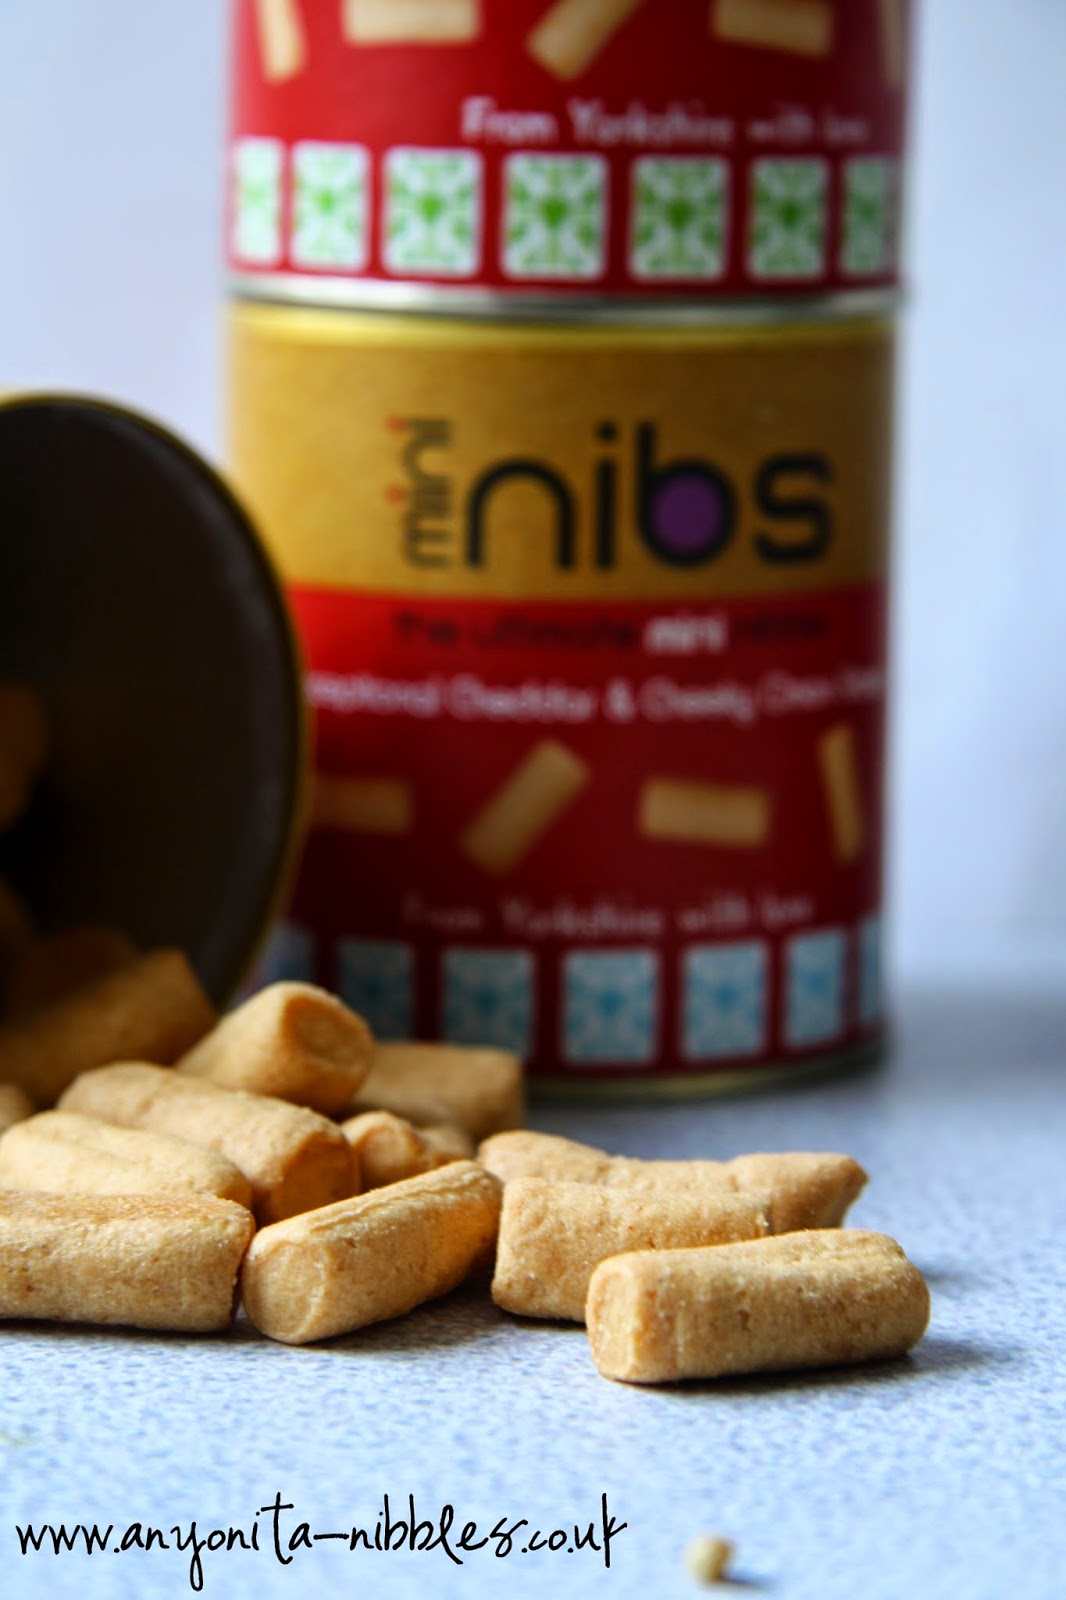 Perfectly bite sized Mini Nibs snacks from Nib Nibs | www.anyonita-nibbles.co.uk